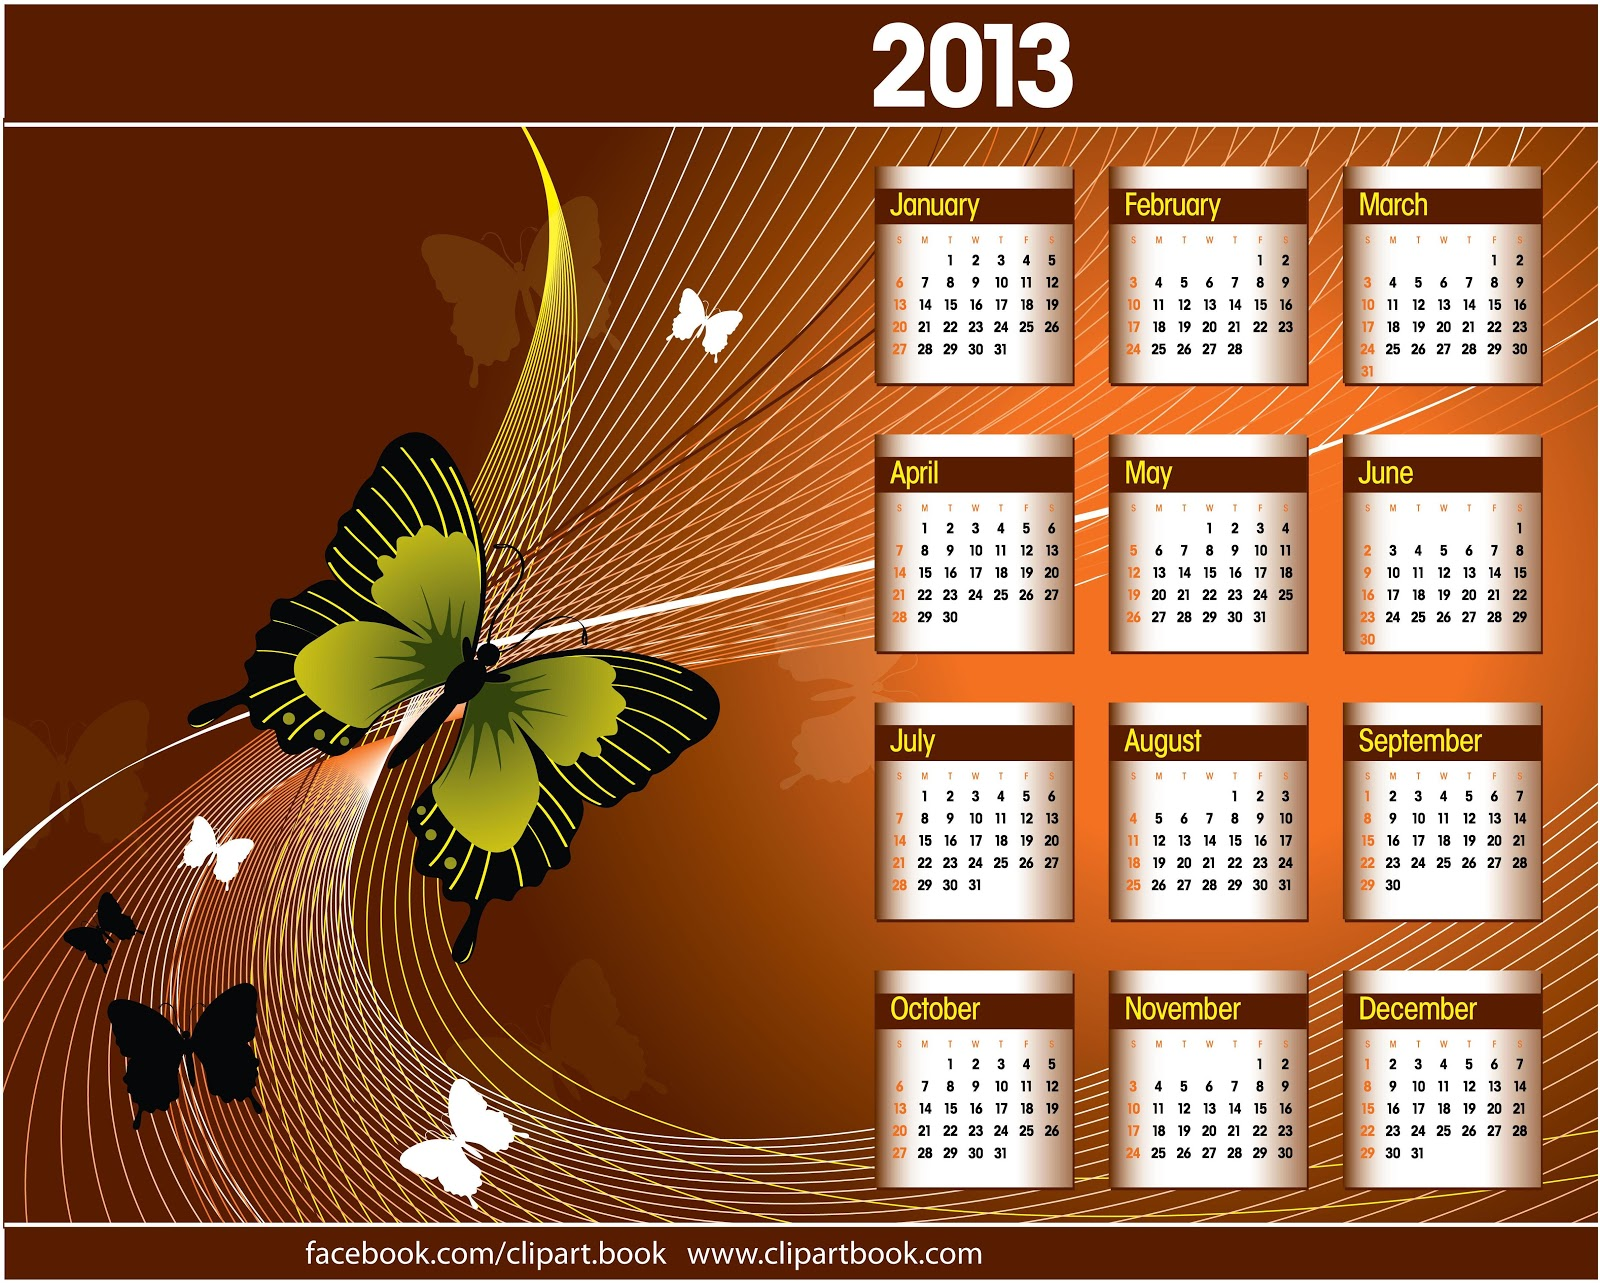 New Calendar Design Ideas : Happy new year calendar designs free clipart book